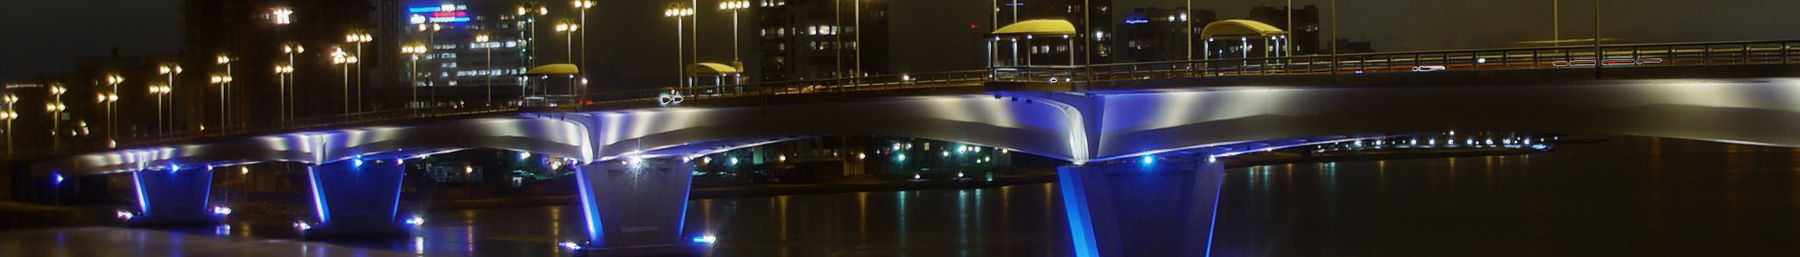 Jyväskylä banner Bridge at night.jpg